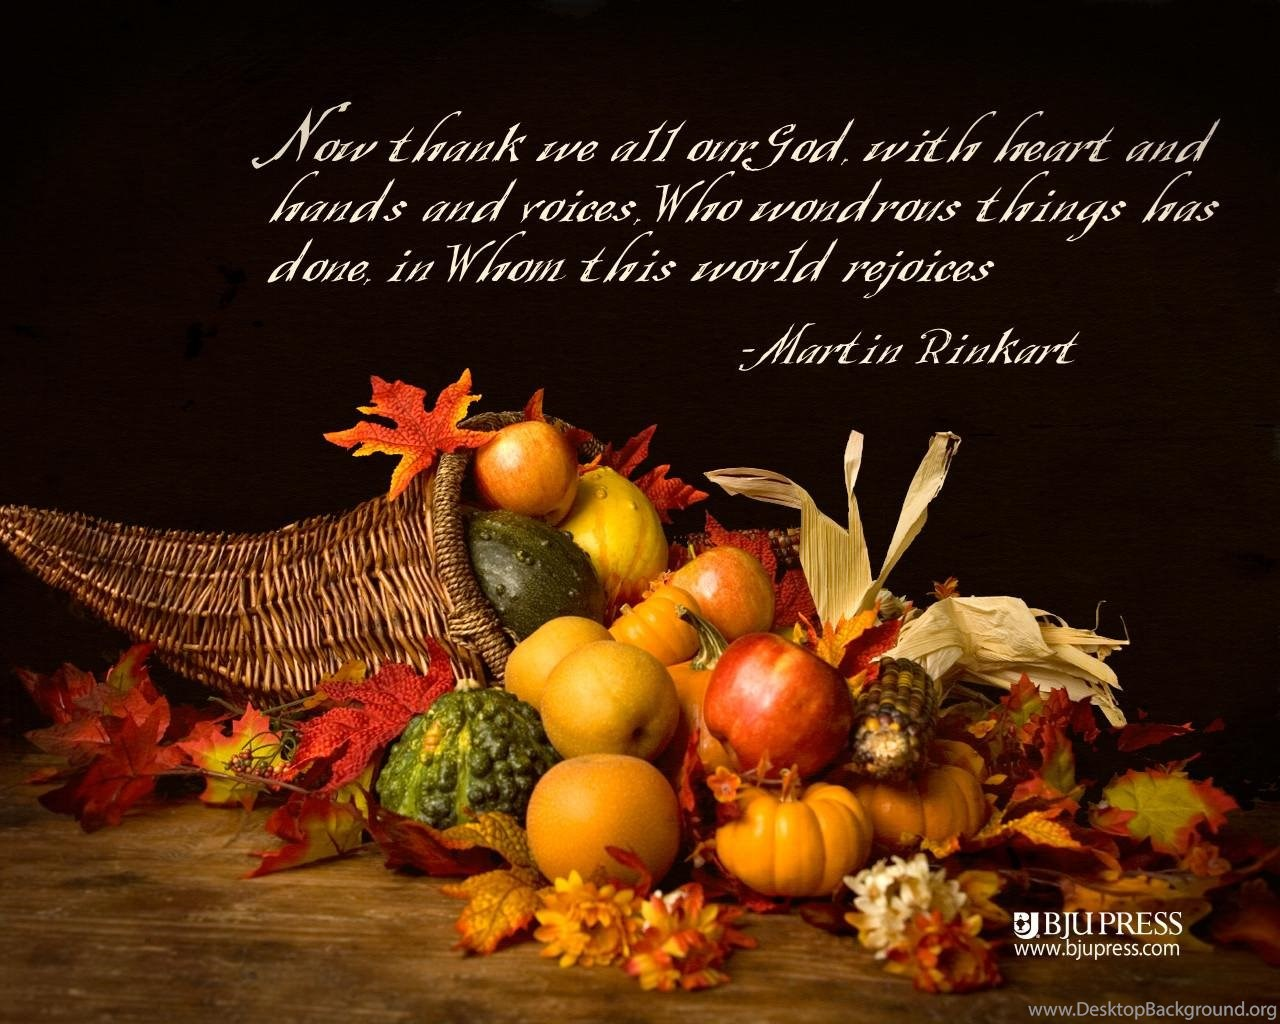 To acquire Thanksgiving Christian pictures picture trends